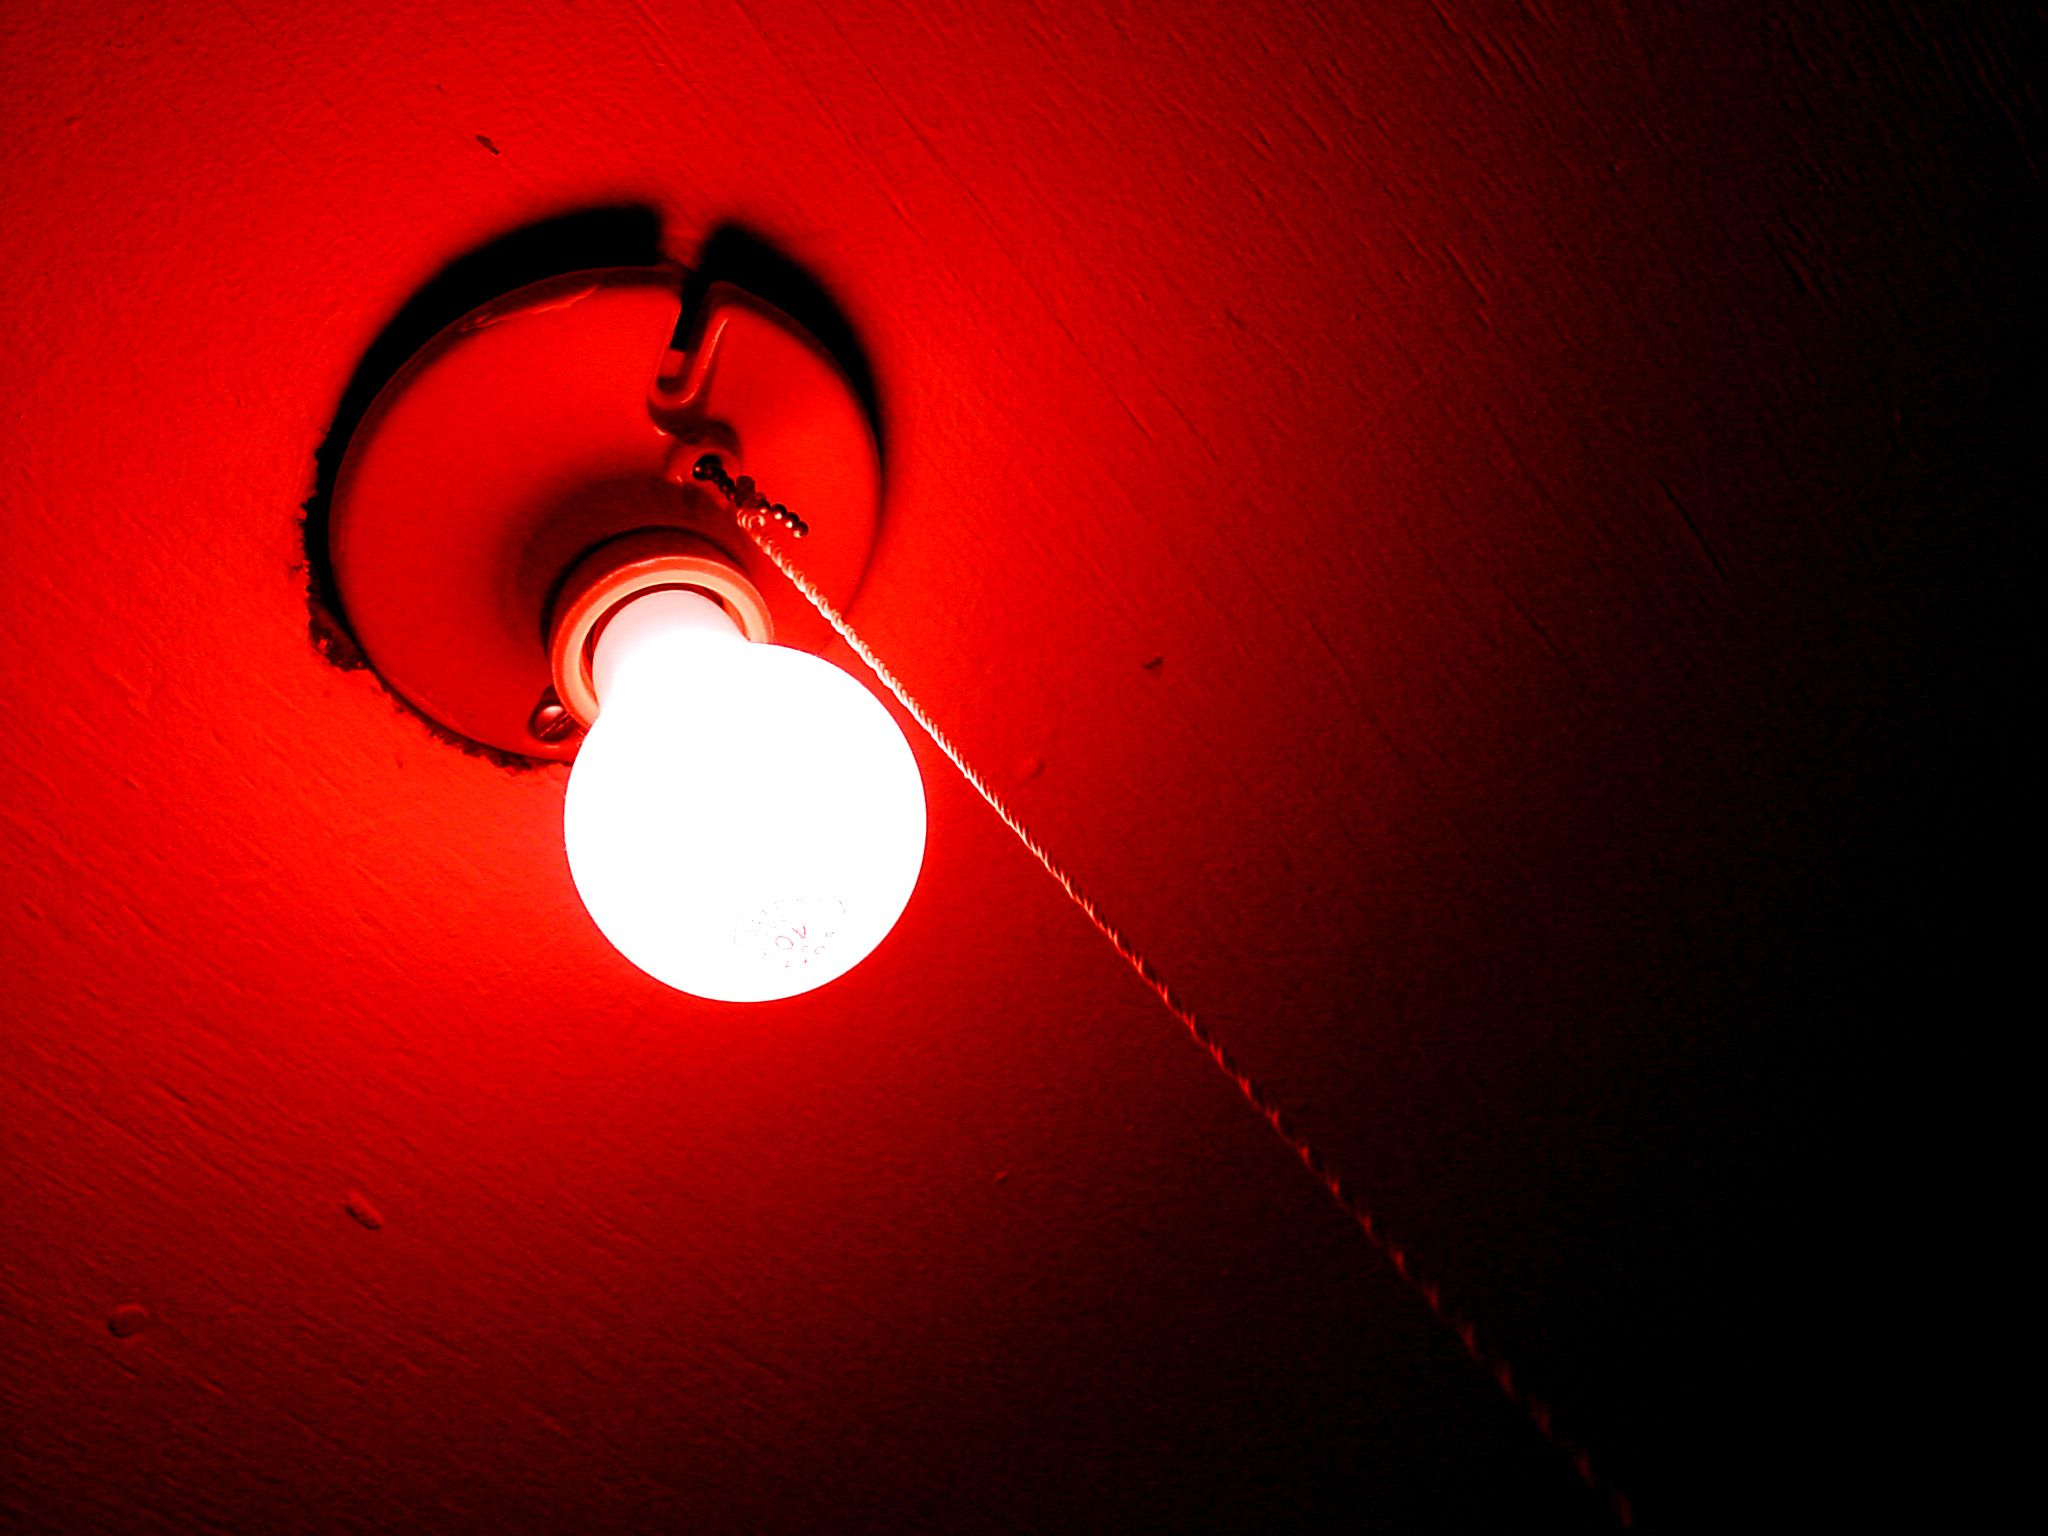 Instead Of A Black Light I Liked Putting Red Bulb In My Ceiling No Improper Activities Went With That Just The Look It Gave Room